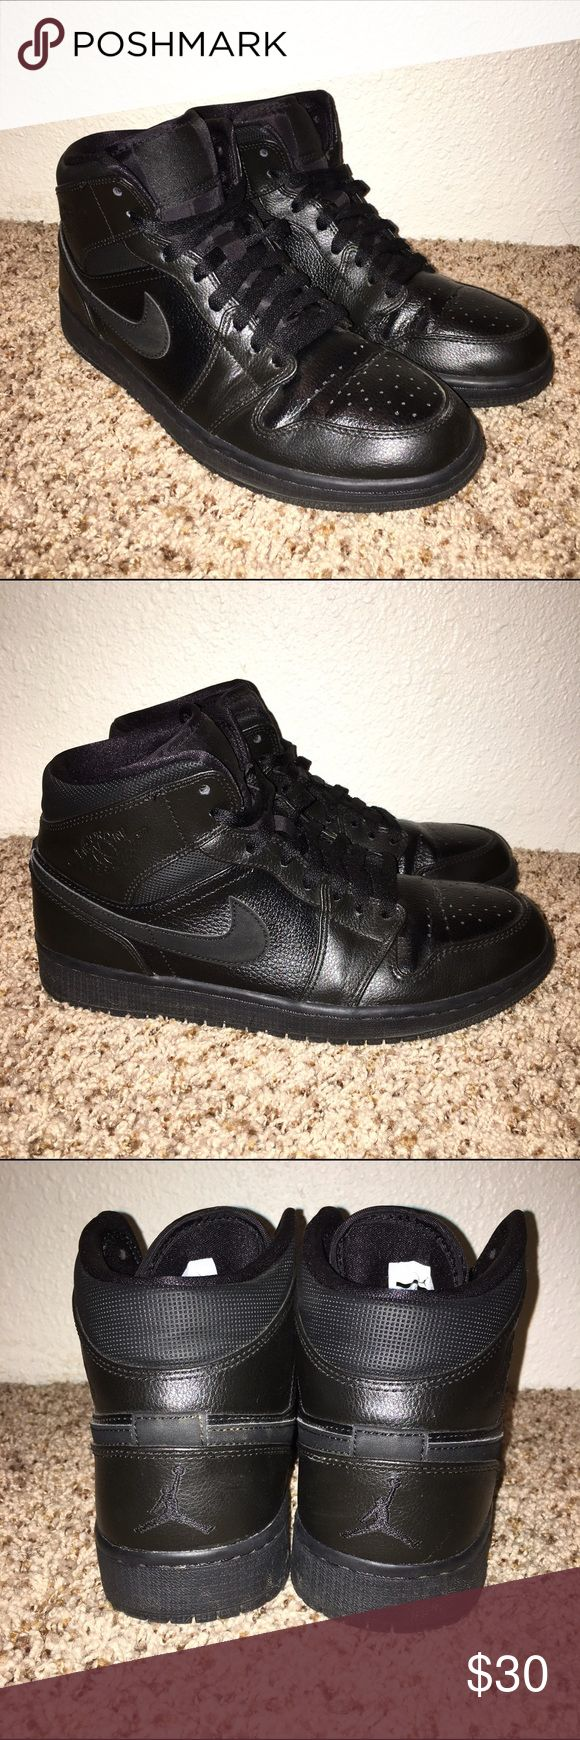 Nike Air Jordon's Black Basketball Shoes These black leather basketball shoes are fresh & sporty! They're very clean & in great condition! I wear a size 10 in women's & these fit me perfect 😊 🎀 If you're interested make an offer! 😍 🎀 Same day shipping 💌 🎀 Not interested in trades ☝🏼️ 🎀 No e-mails/other websites 🙅🏻 🎀 Bundle & Save ✨ Nike Air Jordan Shoes Athletic Shoes